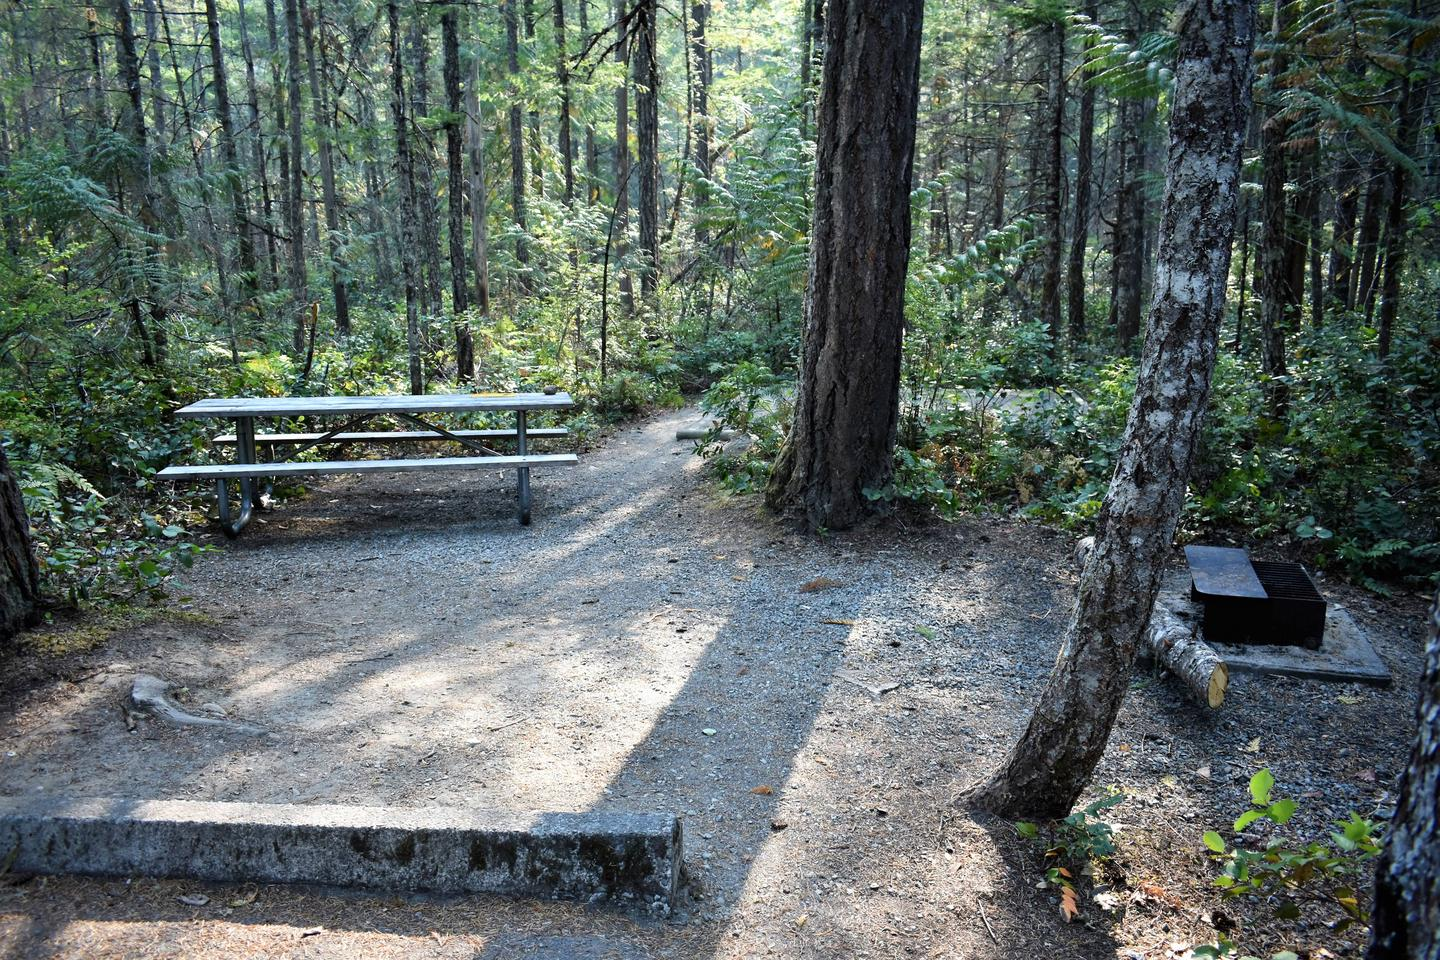 Picnic table and fire ring with tent pad in distanceView of campsite